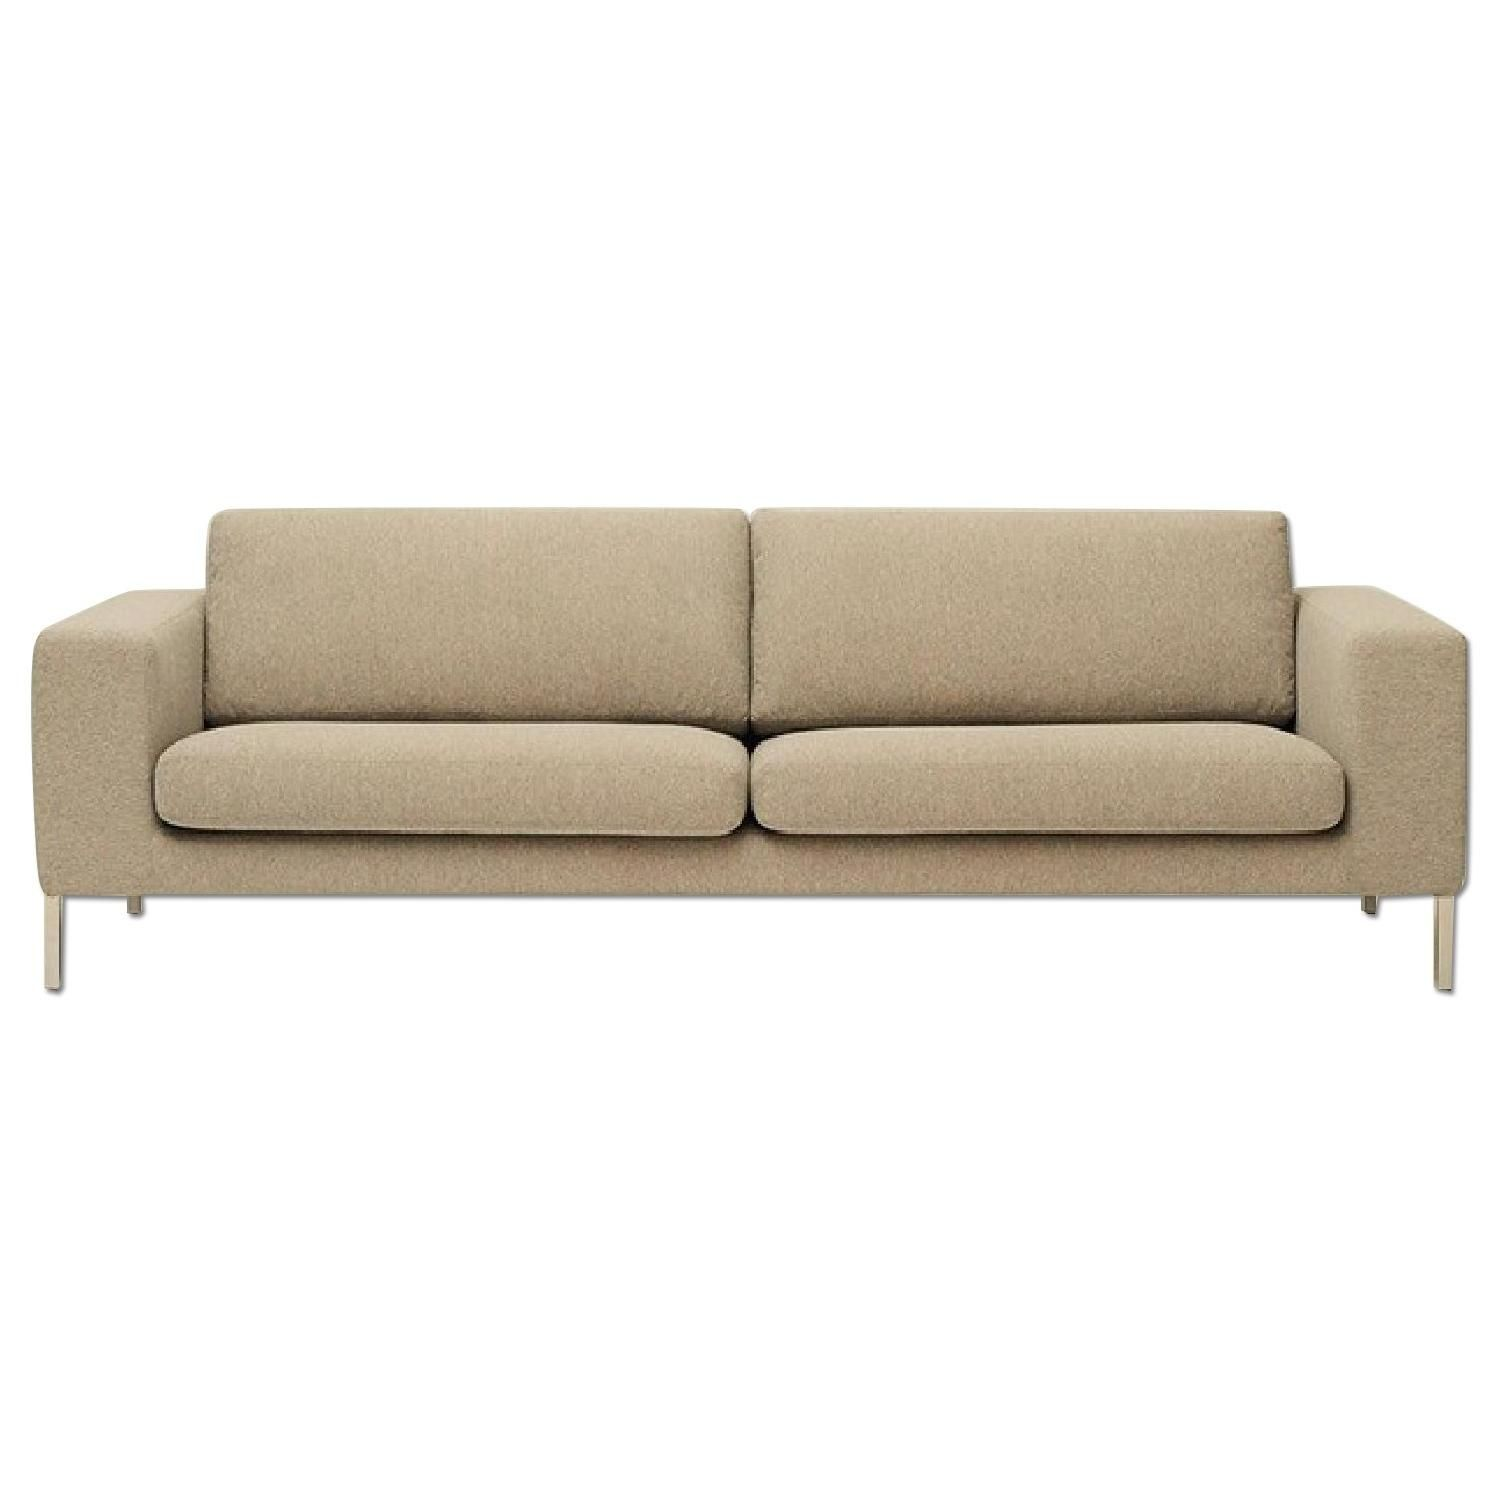 Marvelous This Is A Hive Modern Bensen Neo 2 Seater Sofa For 499 00 Uwap Interior Chair Design Uwaporg